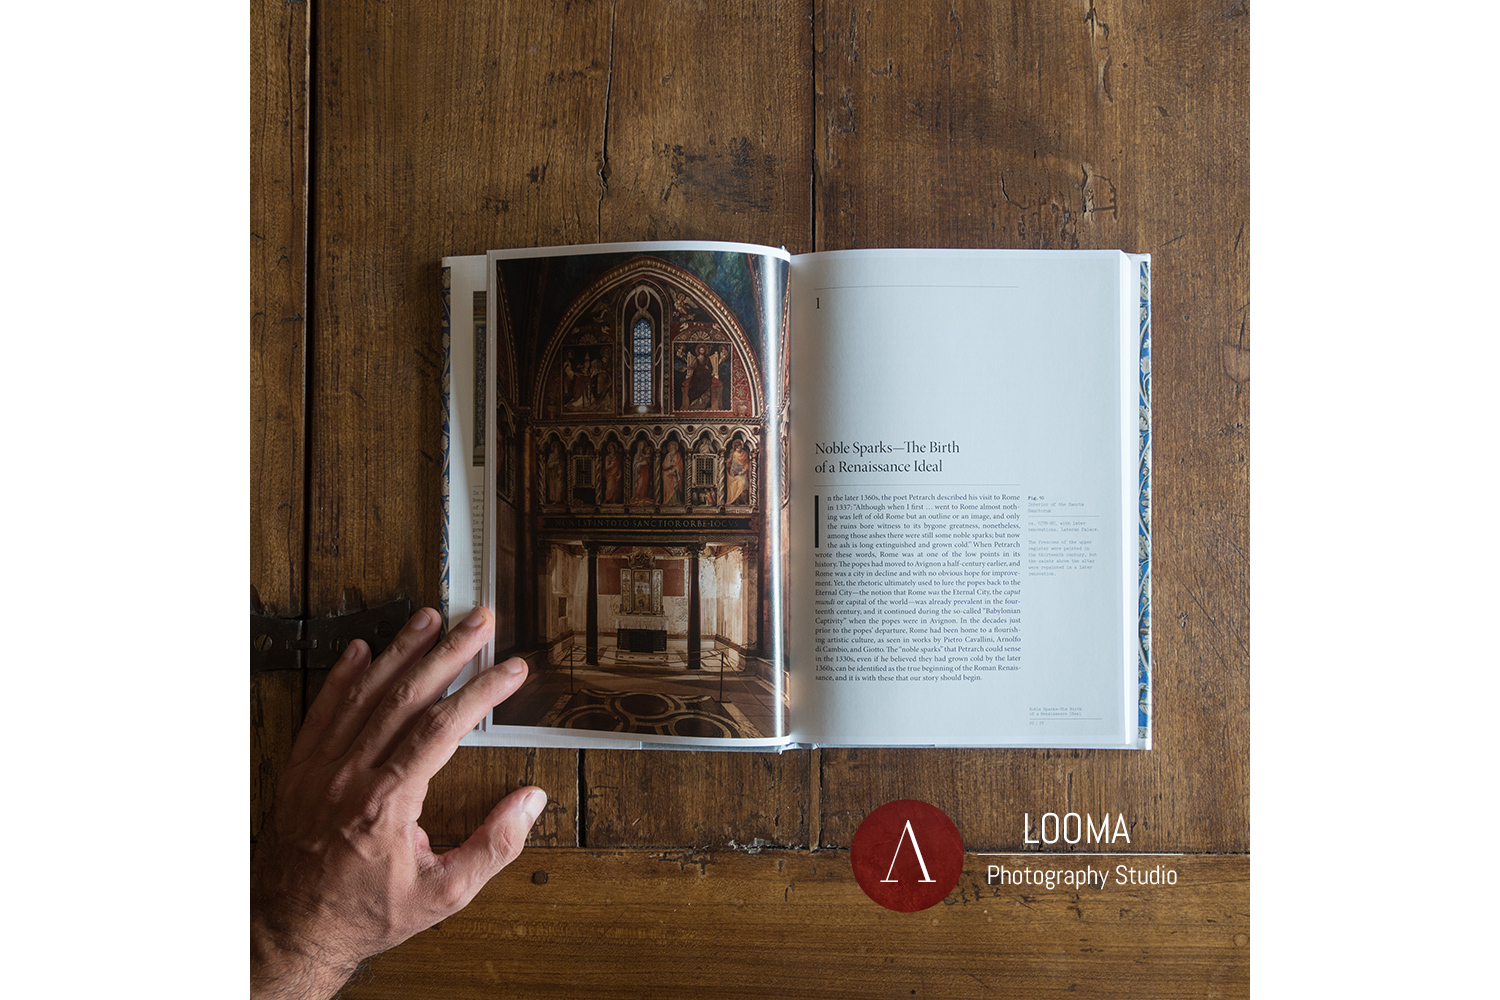 The photograph published on the book: Art of Renaissance Rome